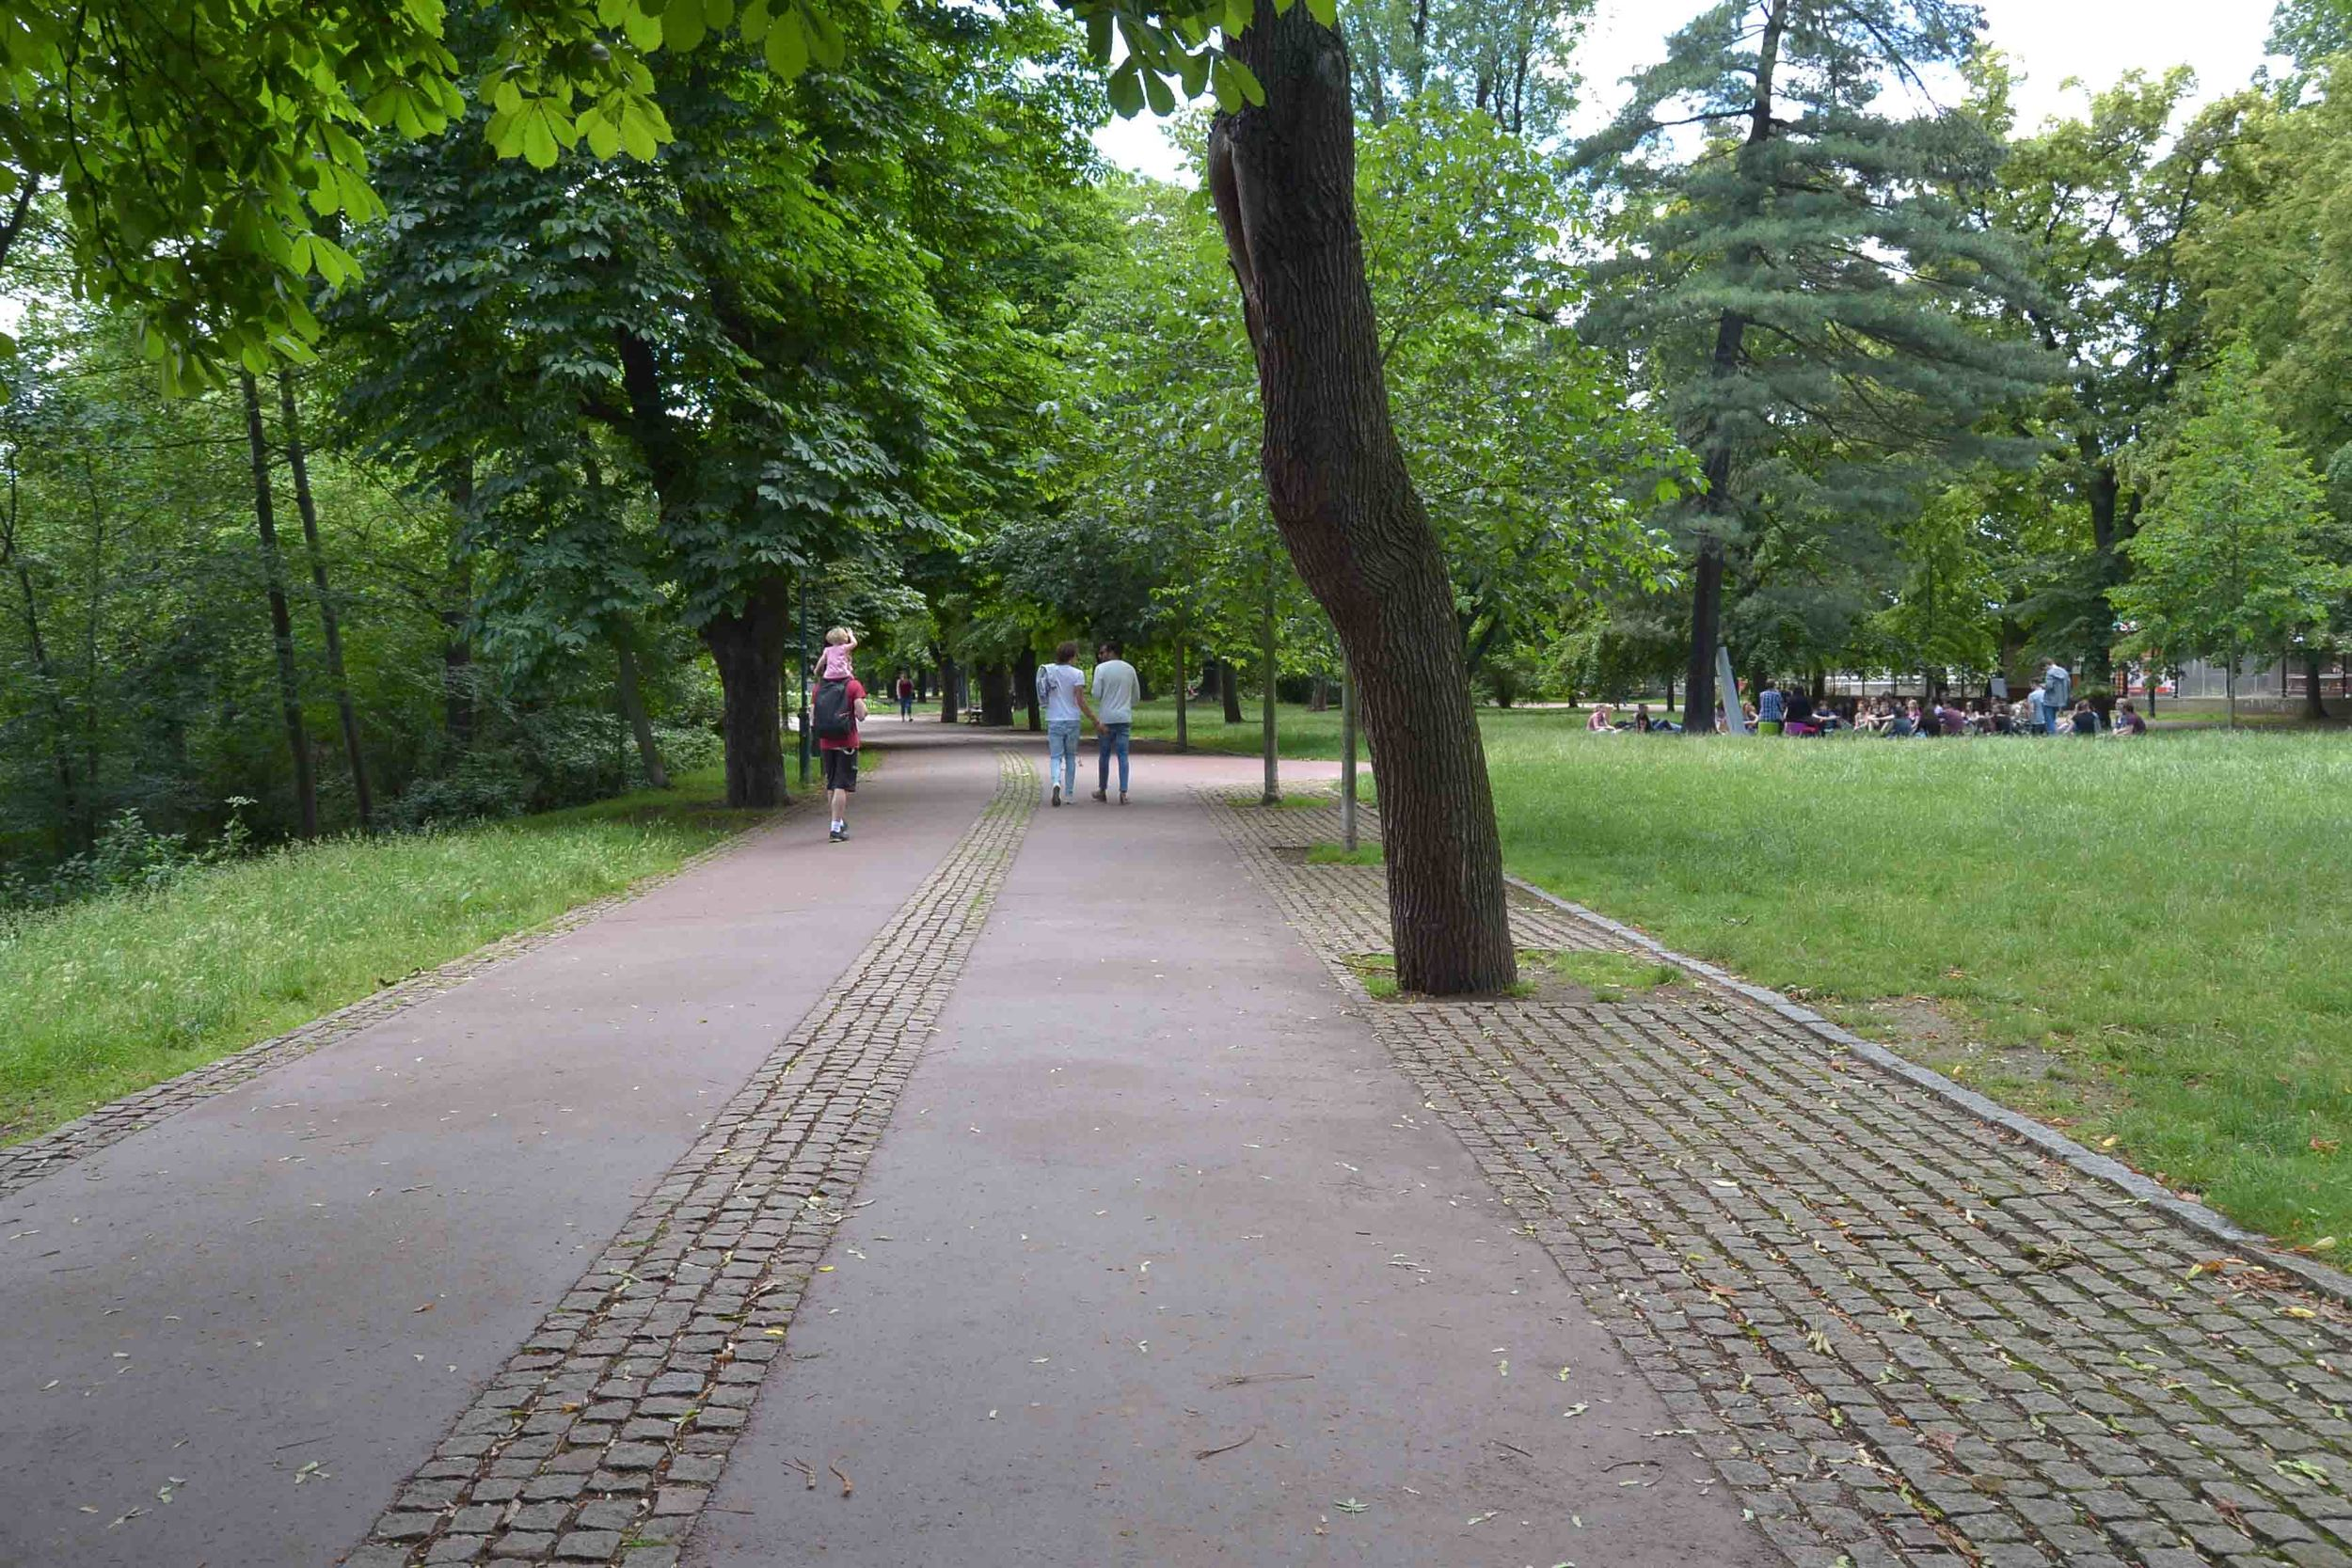 Broad walkways with tall leafy trees make this a lovely park to explore